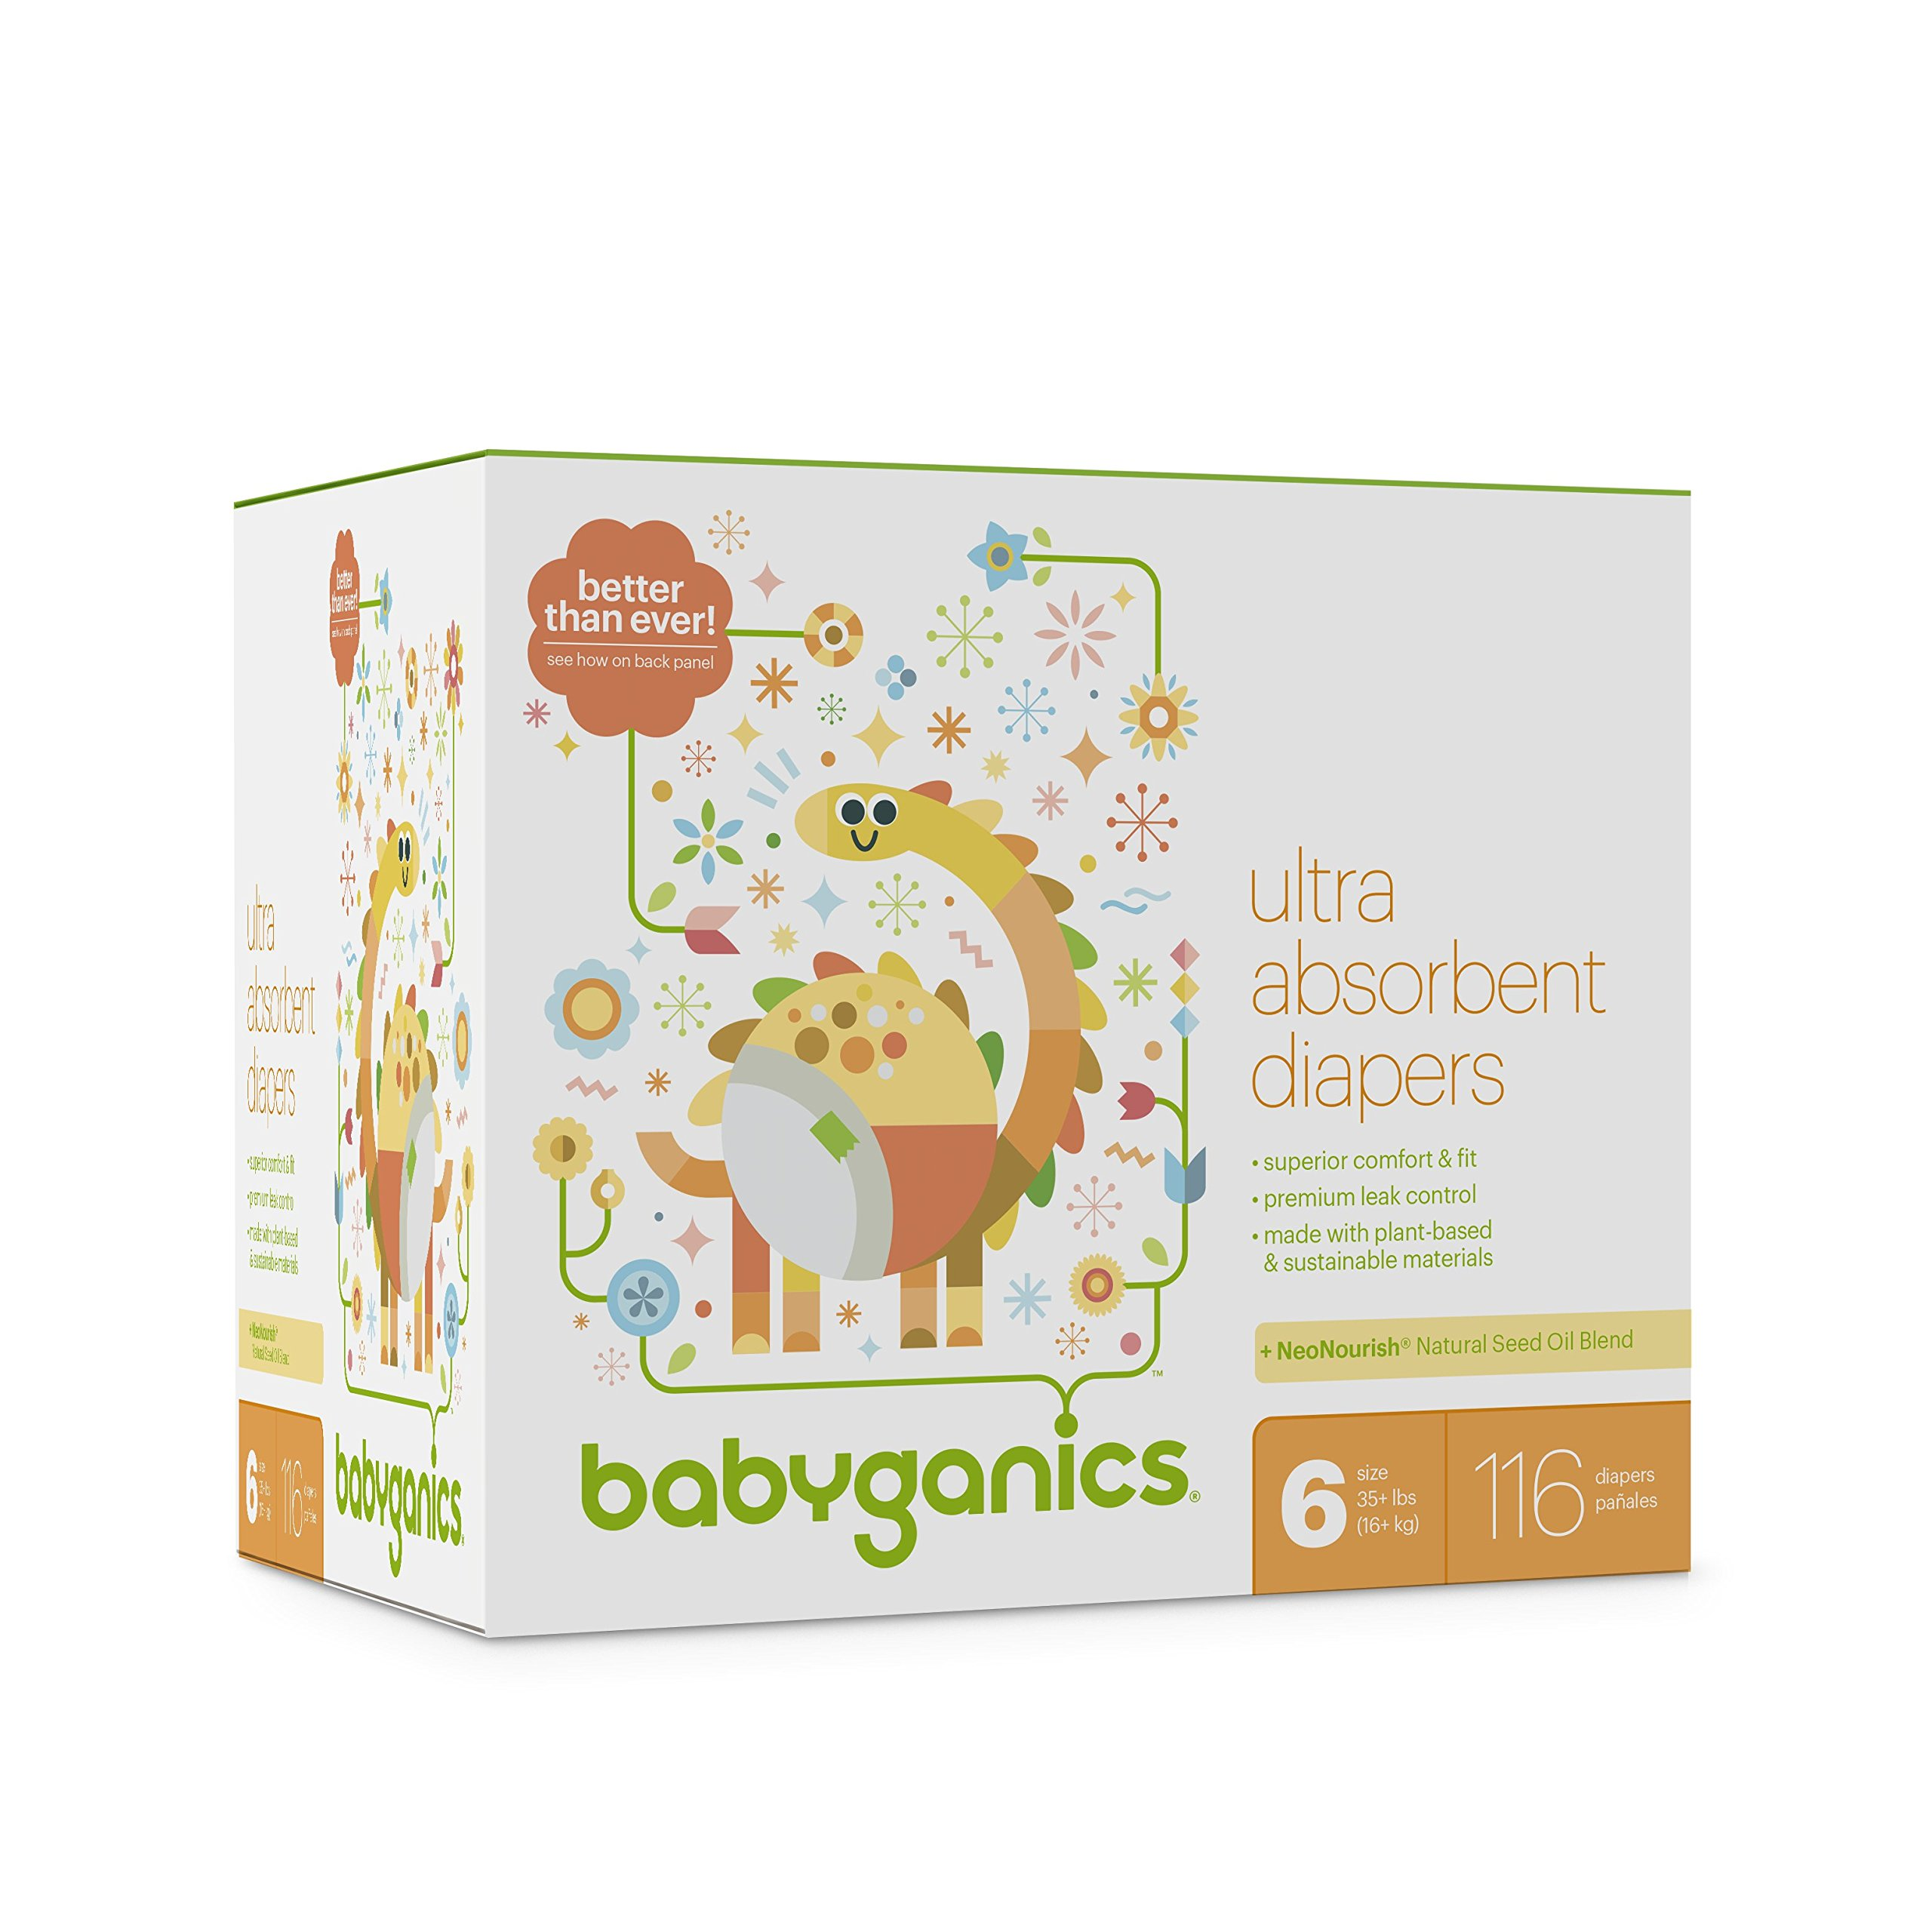 Baby Diapers, Size 6 (35 lbs+) 116 Count- Babyganics Ultra Absorbent, Unscented, Made without Chlorine, Latex